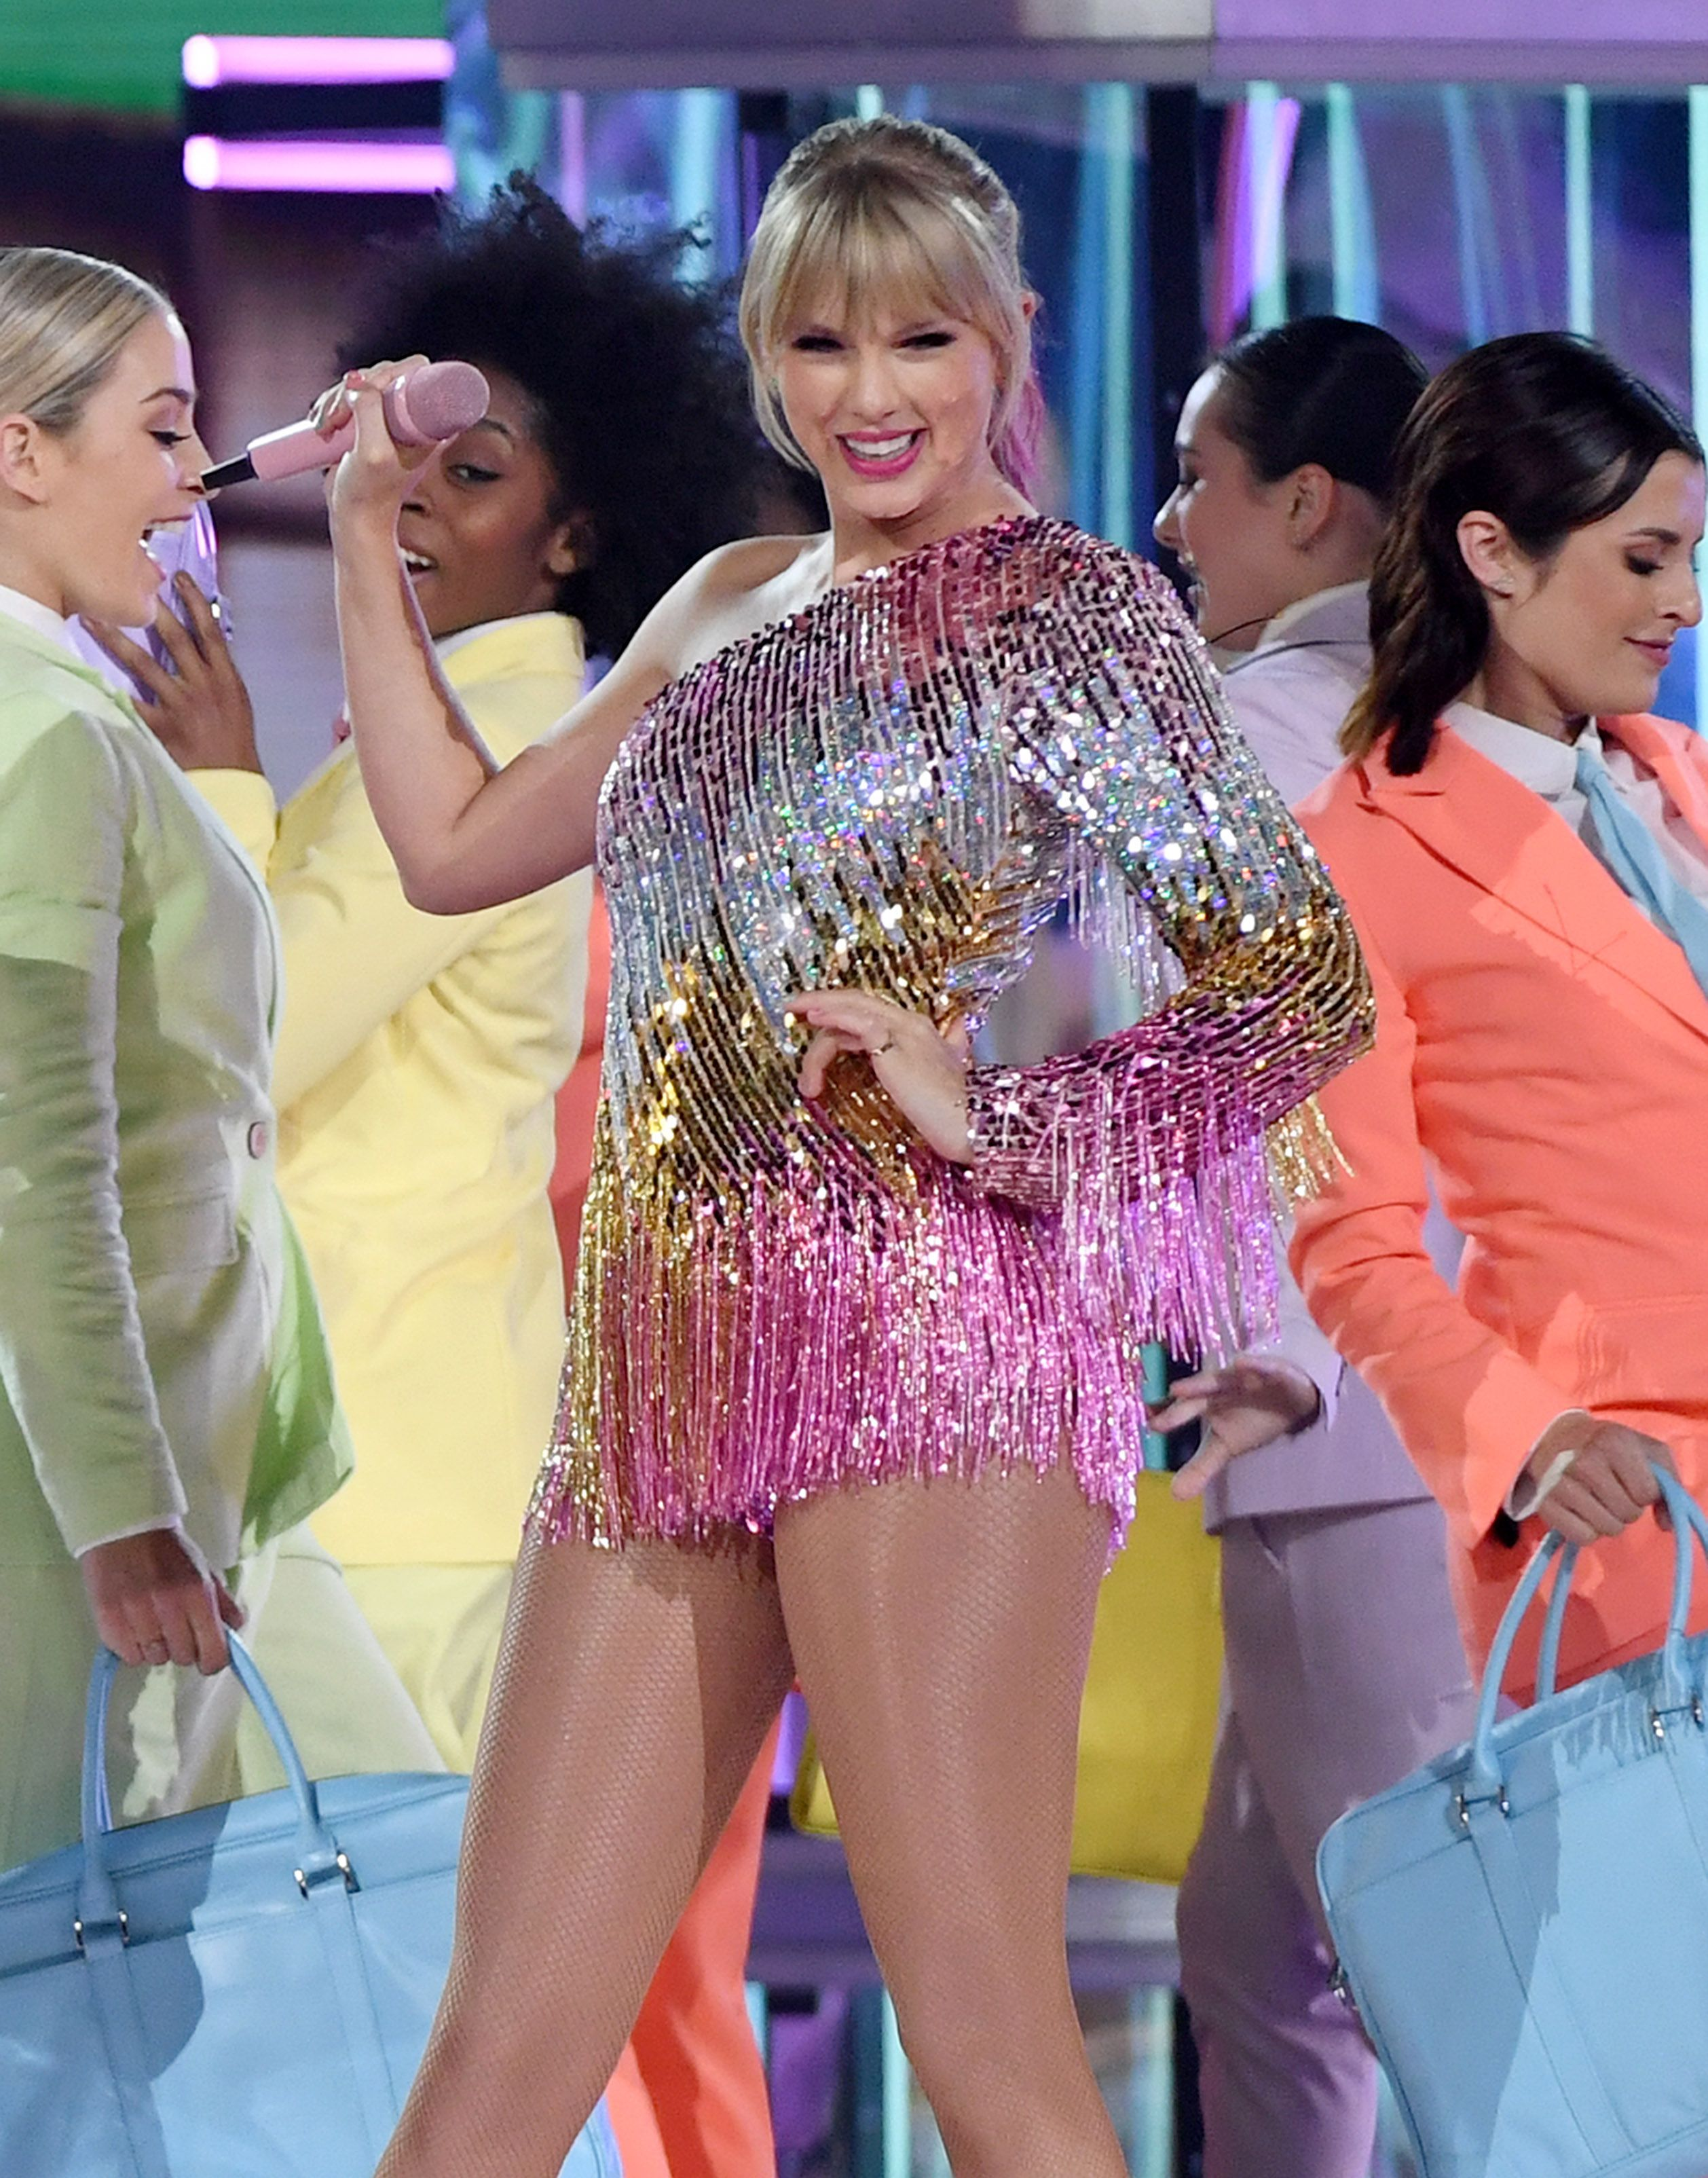 Taylor Swift's 'You Need to Calm Down' Lyrics Are Her Musical Clapback to Trolls